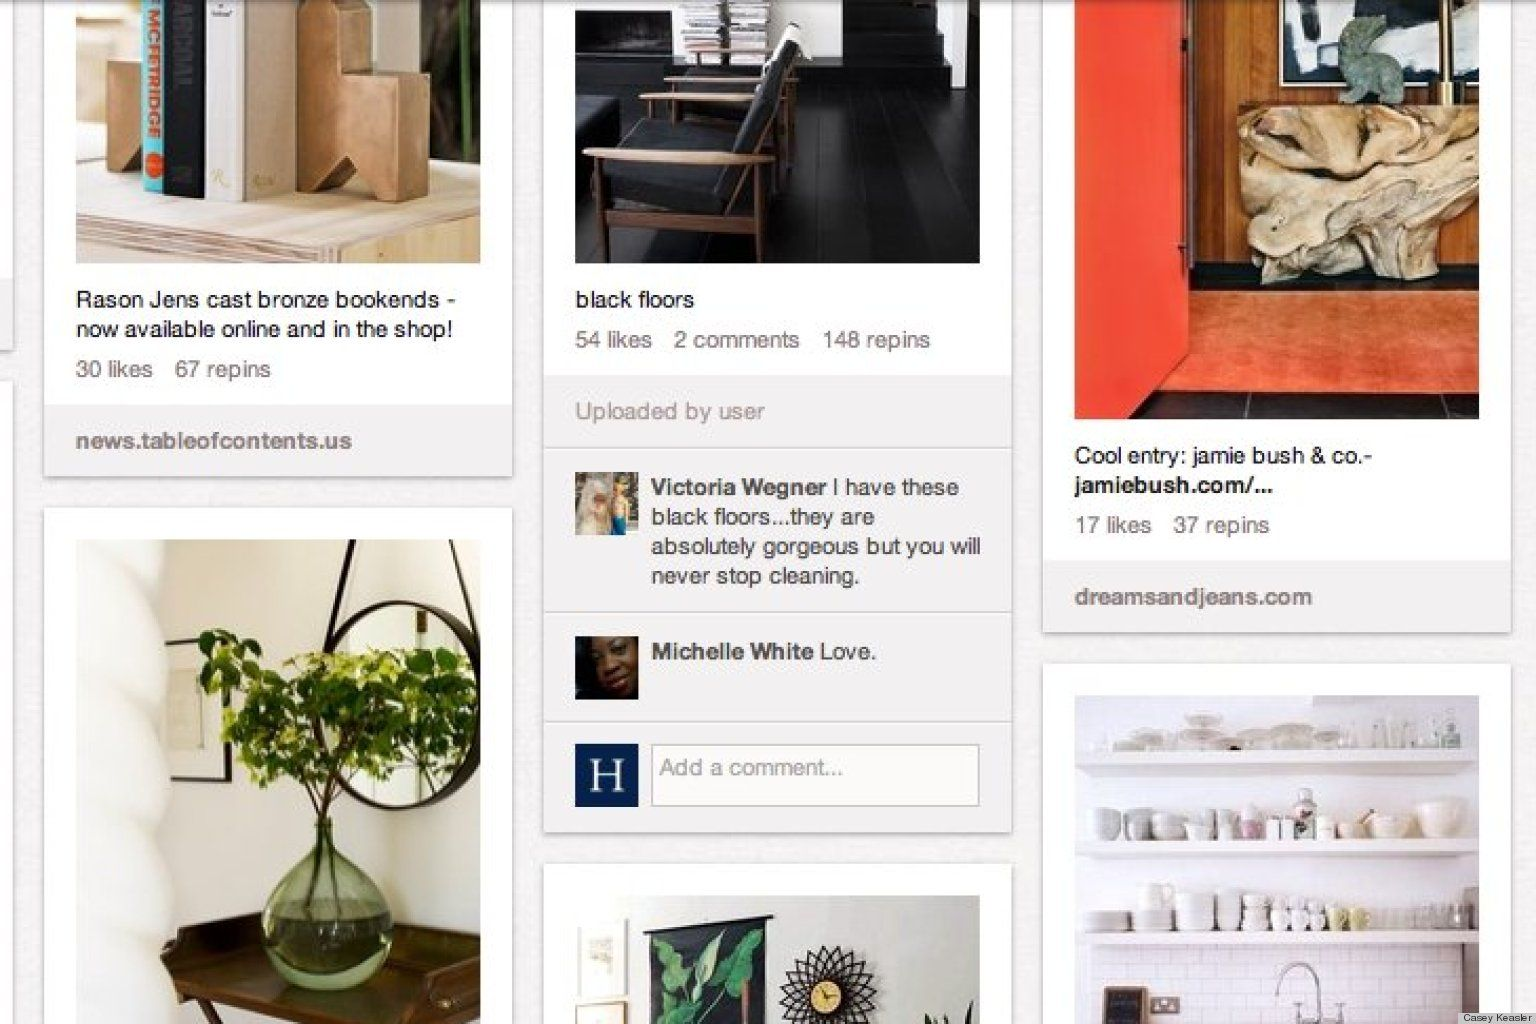 The 5 Pinterest Boards That Will Inspire You Now